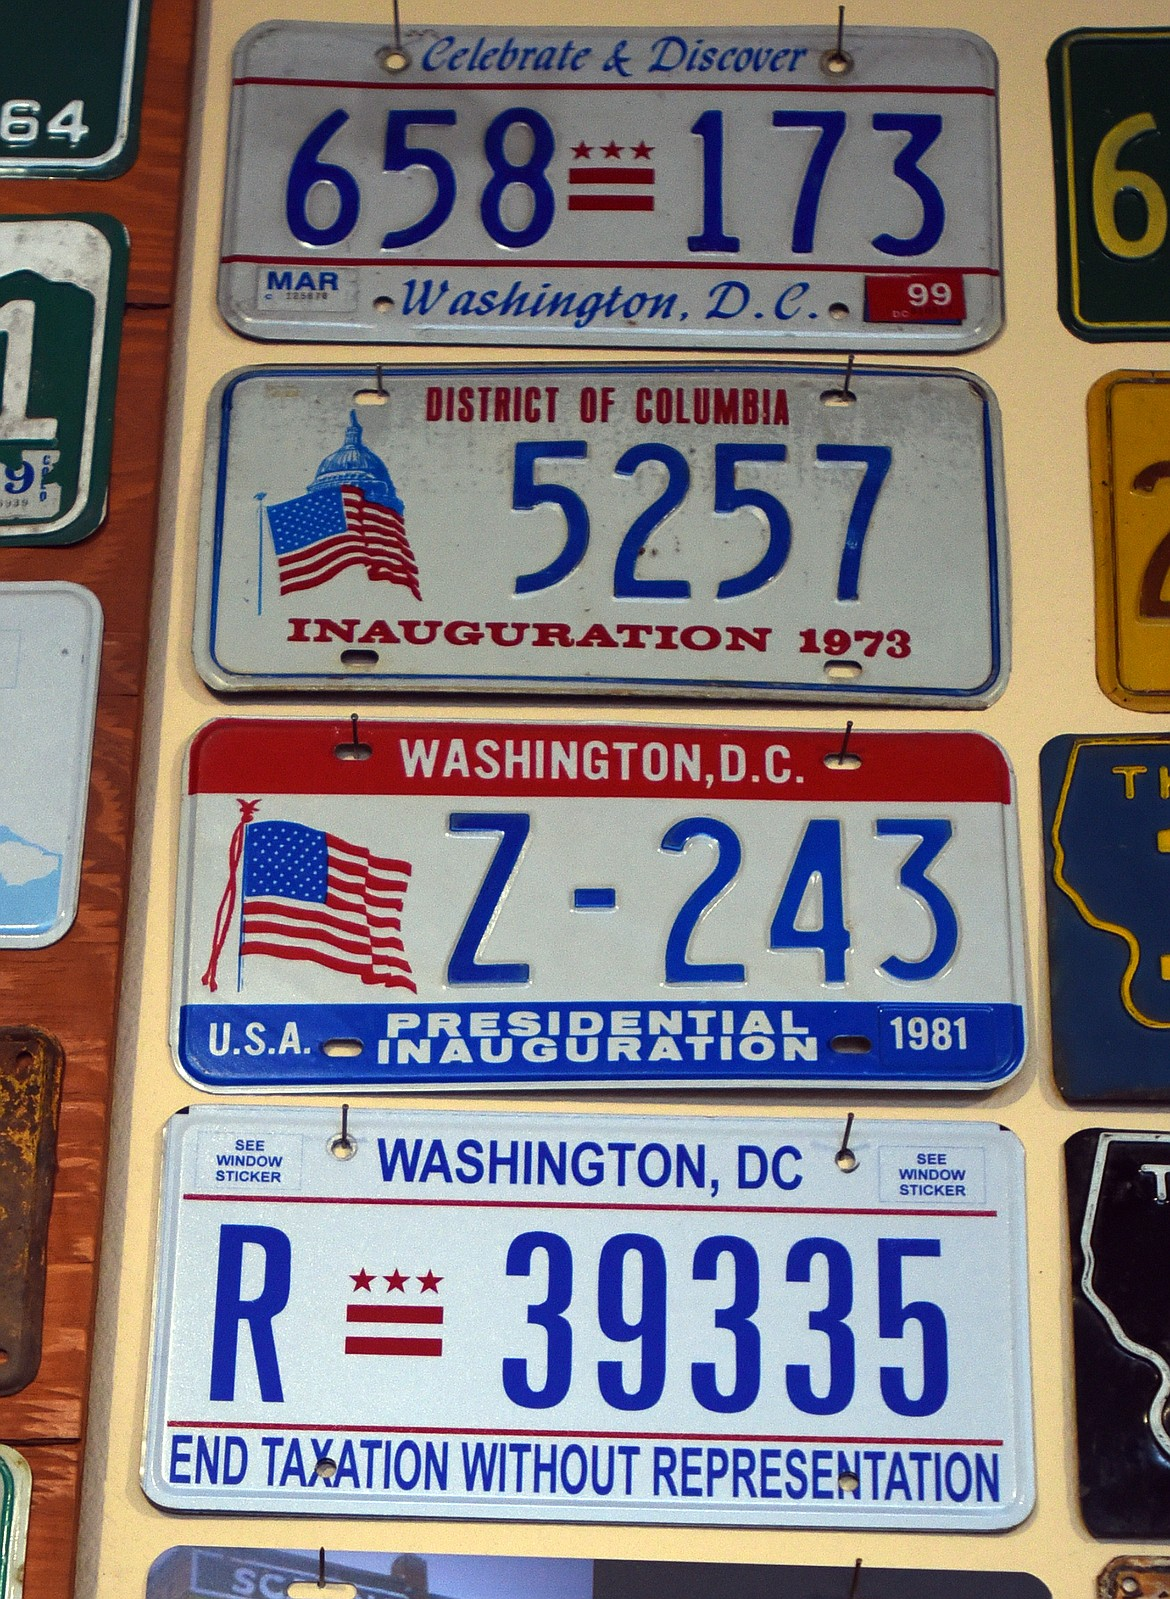 Ken Fitzgerald's license plate collection includes plates from all 50 states as well as the District of Columbia and even some foreign plates. (Jeremy Weber/Daily Inter Lake)